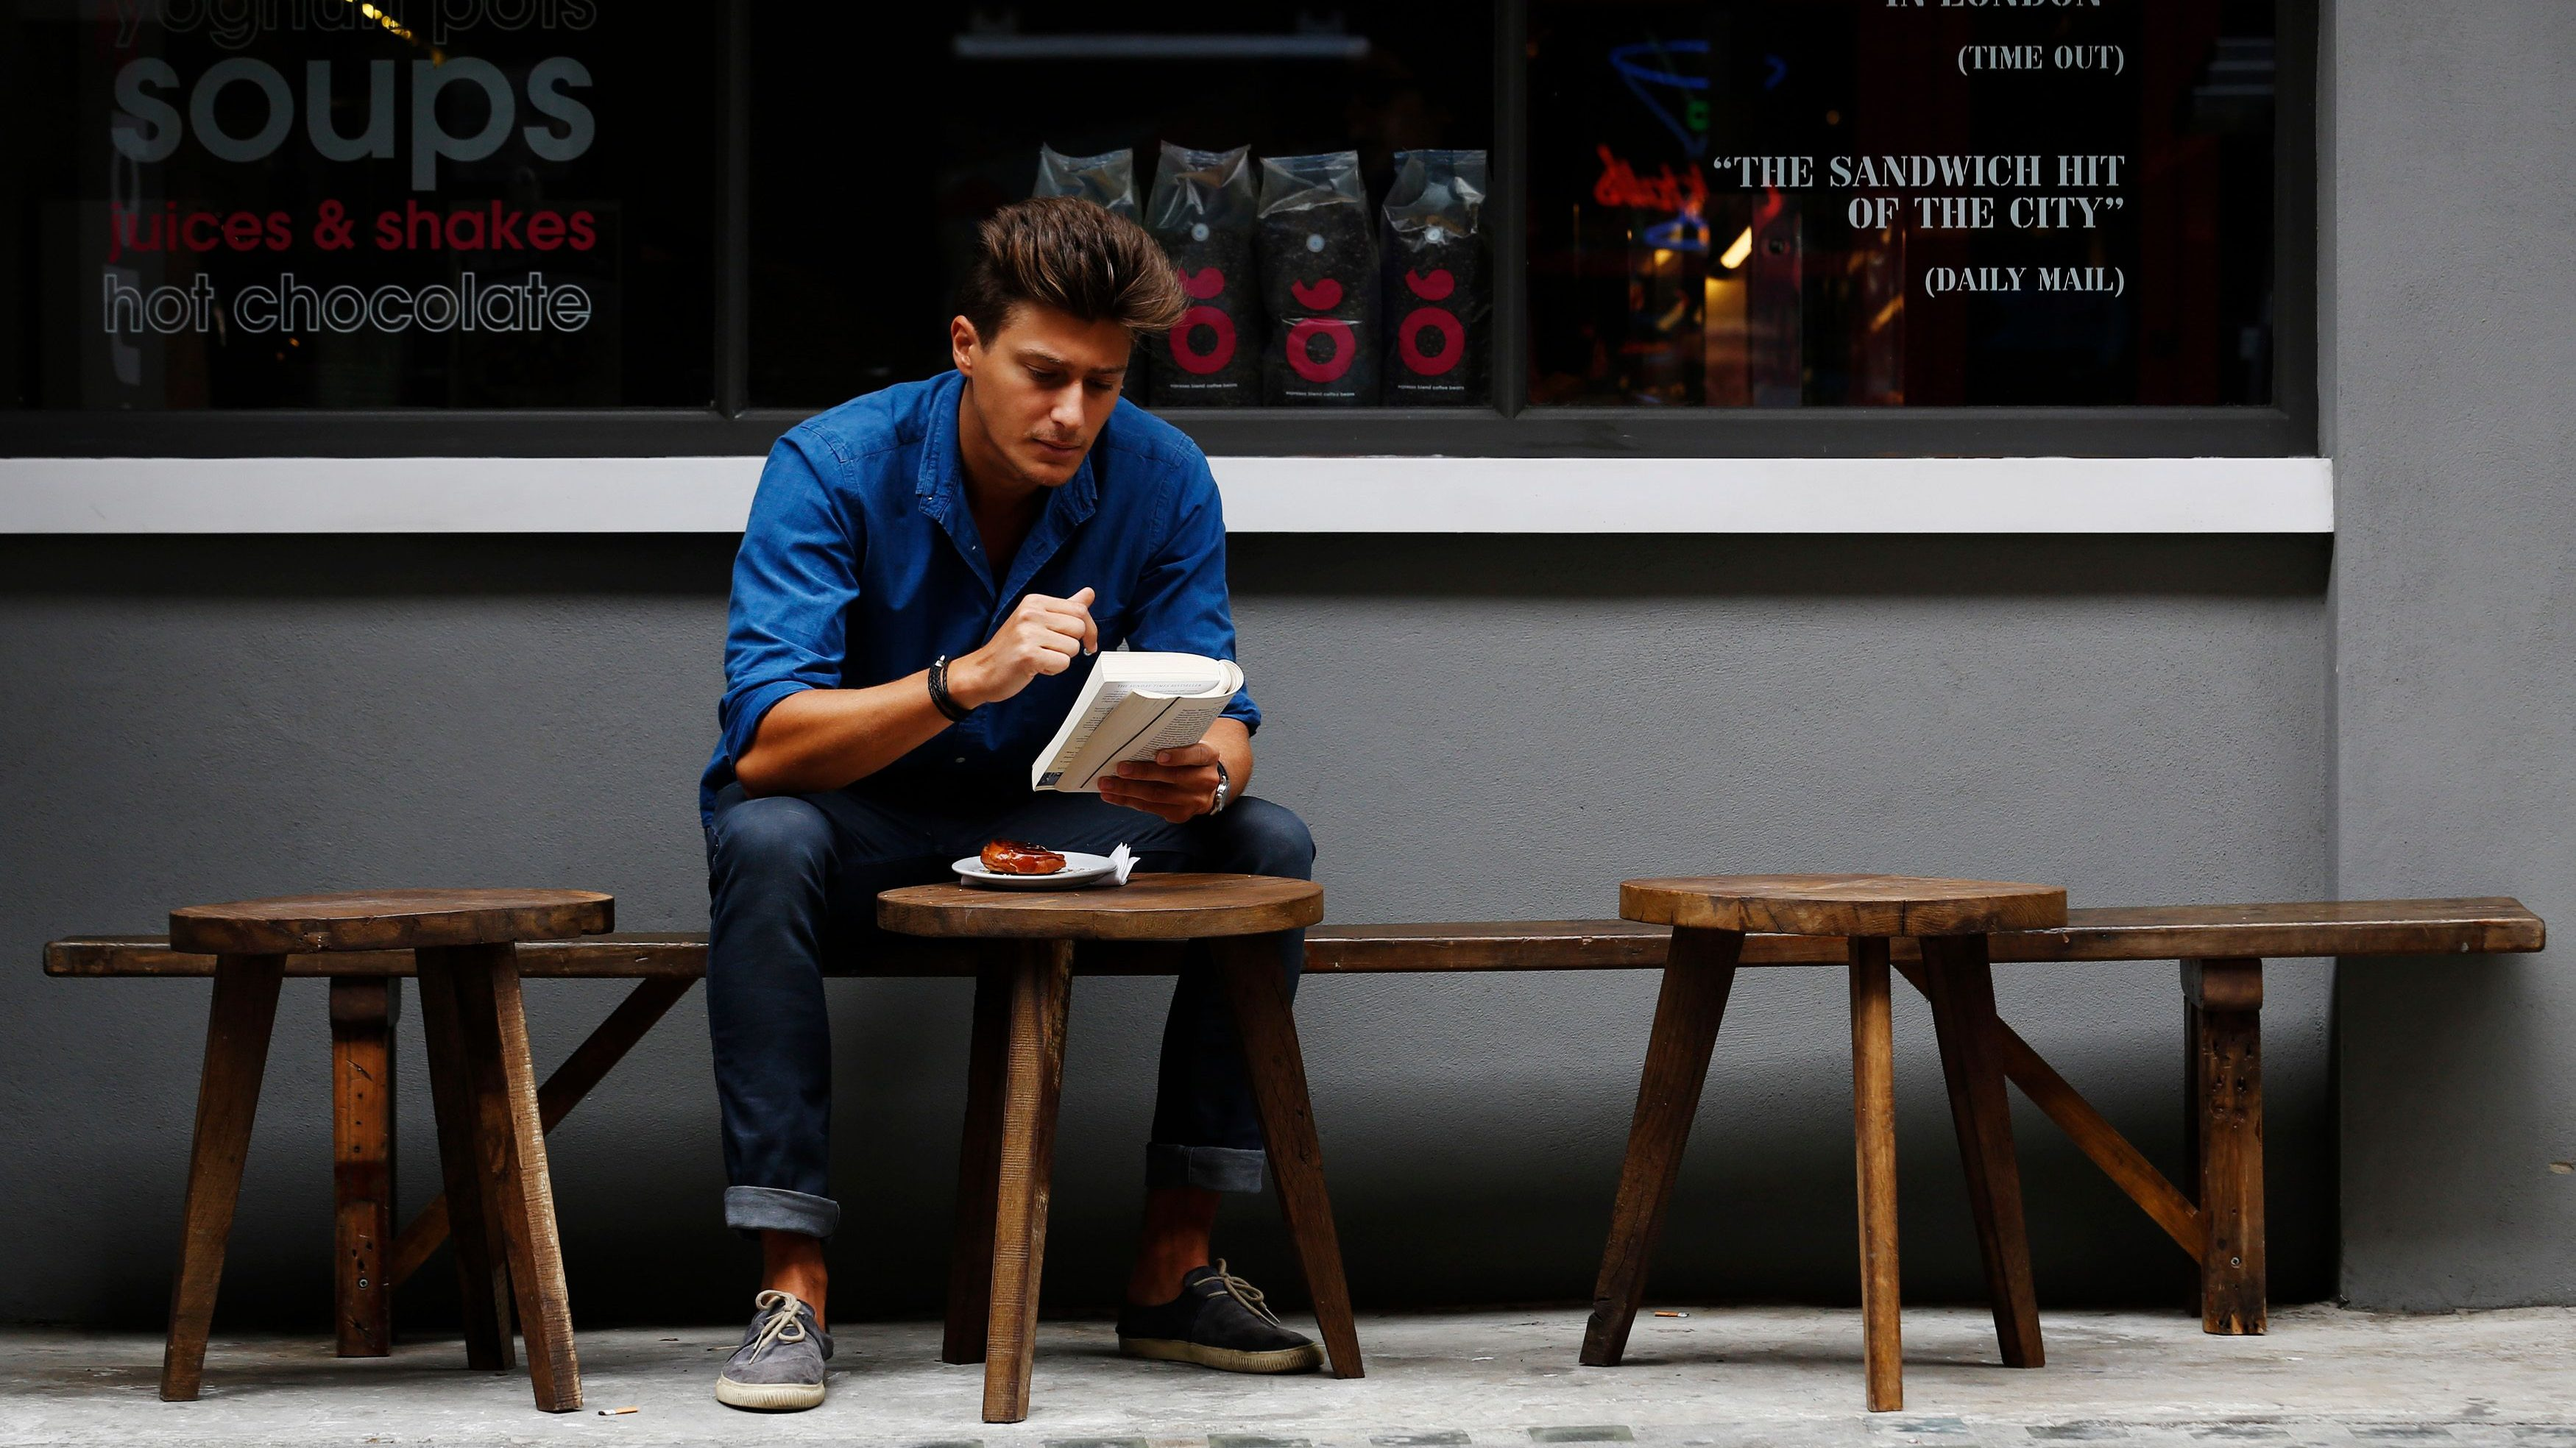 A man reads a book outside a cafe in central London